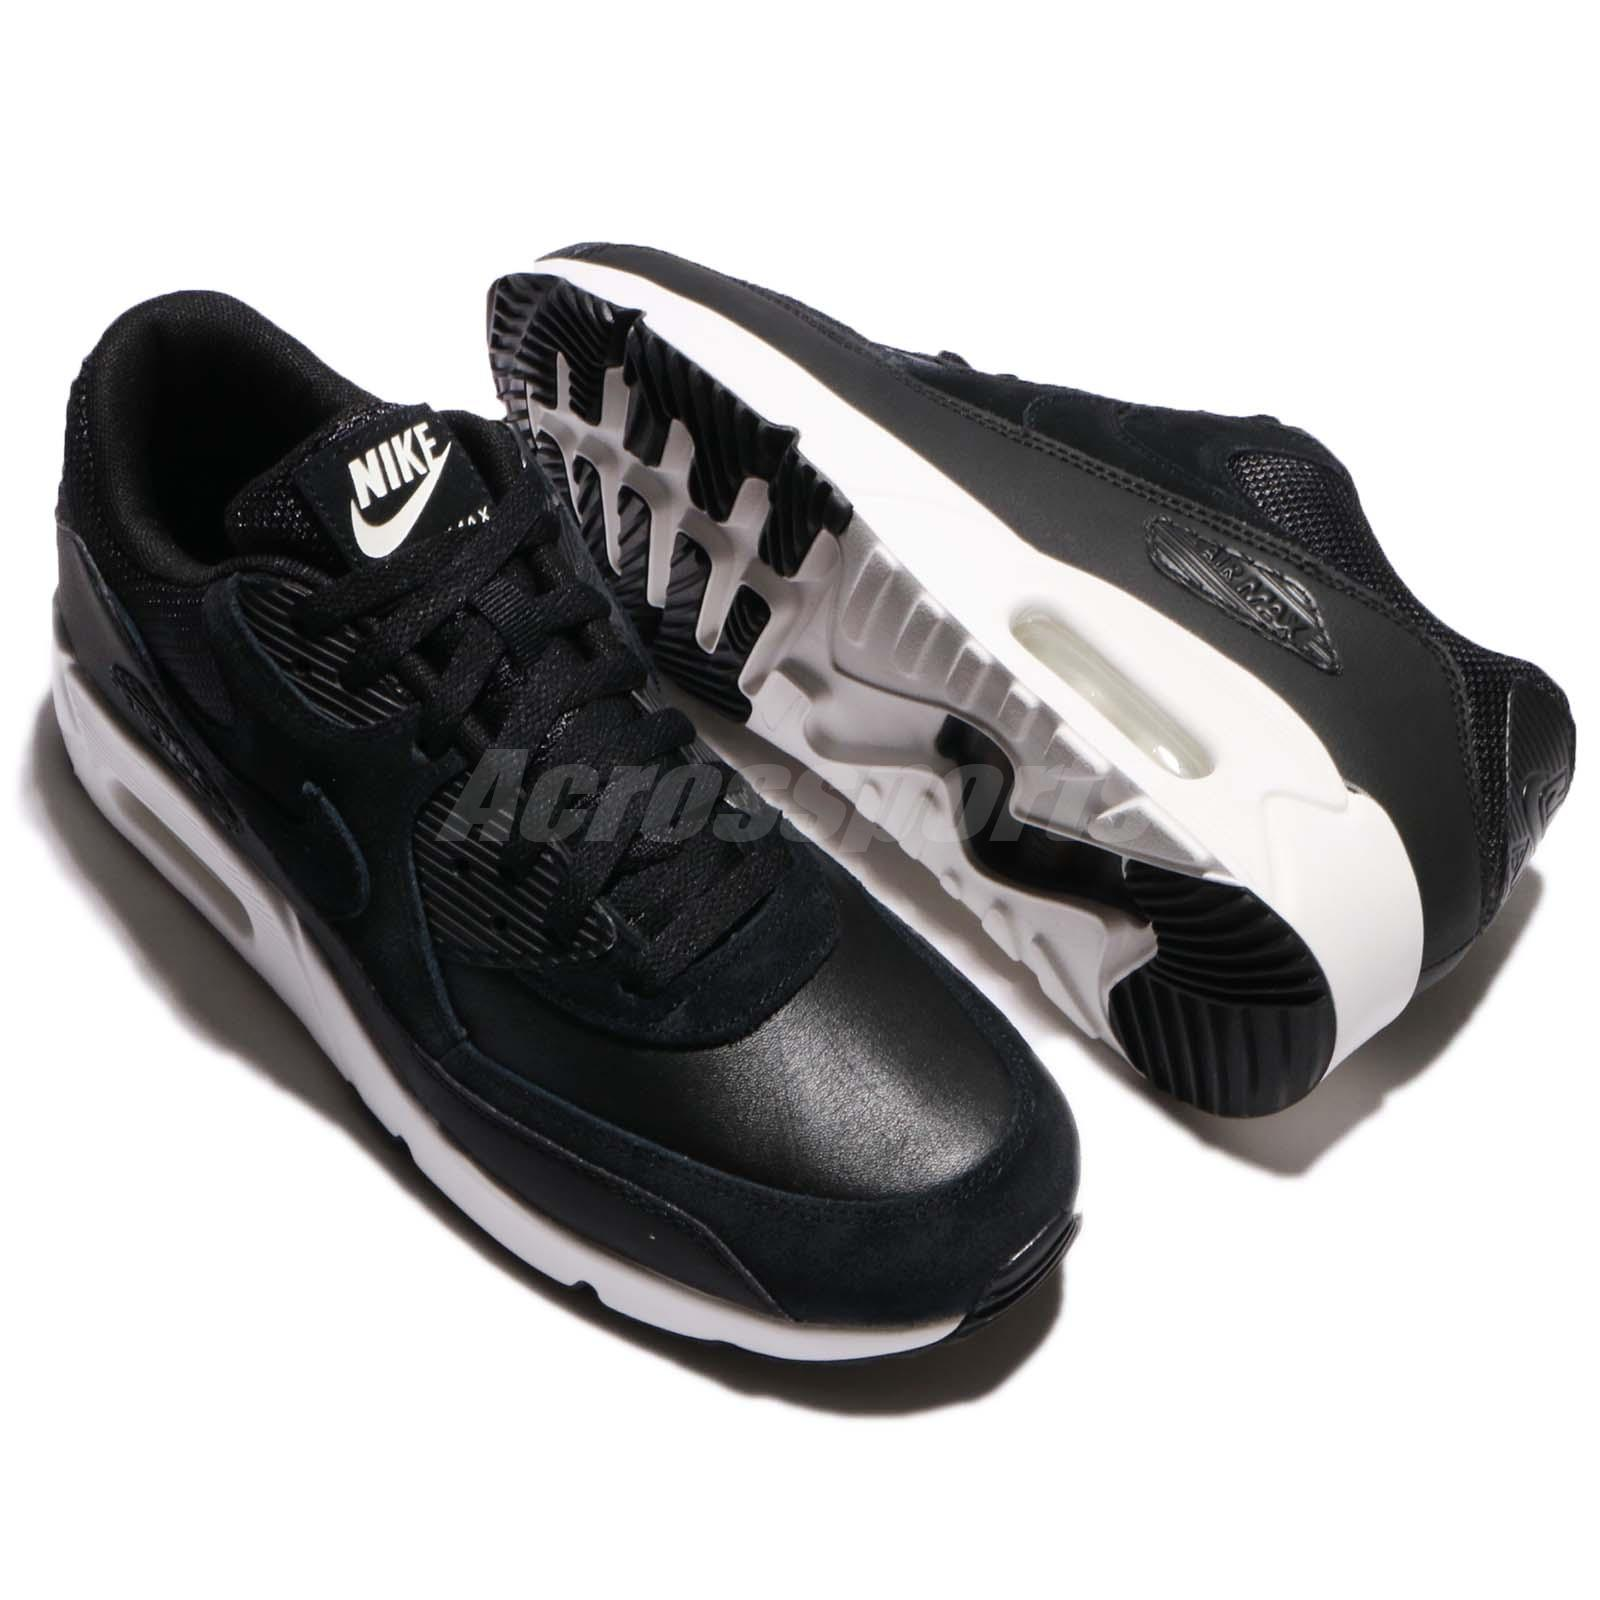 the best attitude b0dc6 57afa Fitness, Running   Yoga Clothing, Shoes   Accessories Nike Air Max 90 Ultra  2.0 LTR Leather Black Summit White Men ...